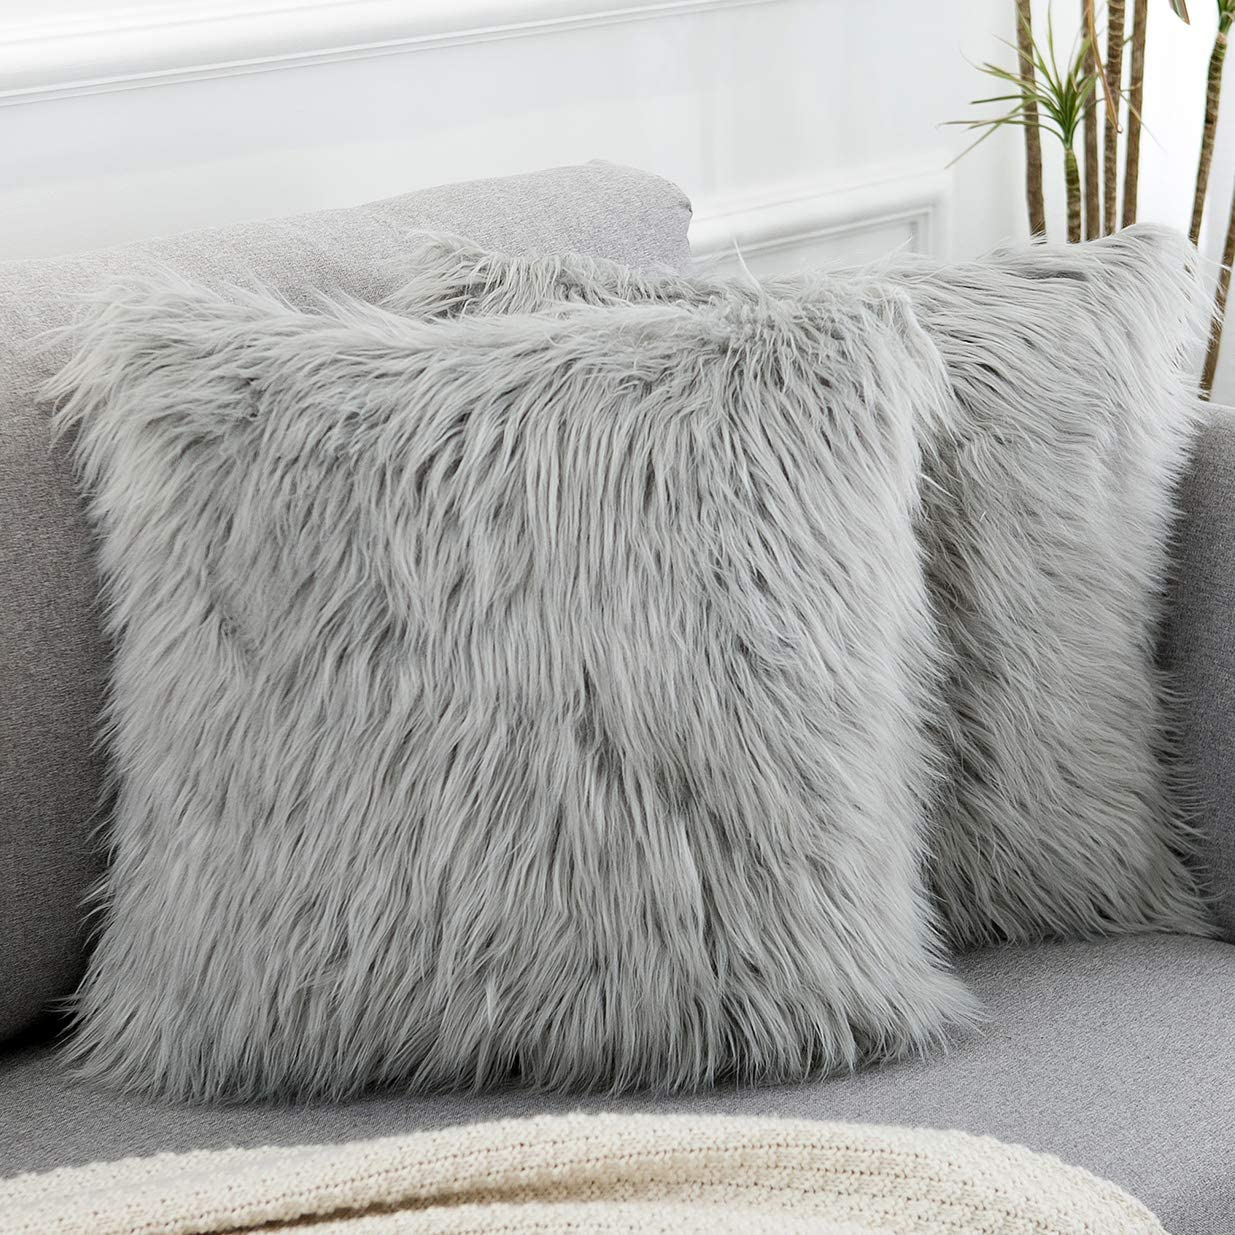 valentines day decorative pink fluffy pillow covers new luxury series merino style faux fur throw pillow covers fuzzy cushion cover 18x18 inches 45x45